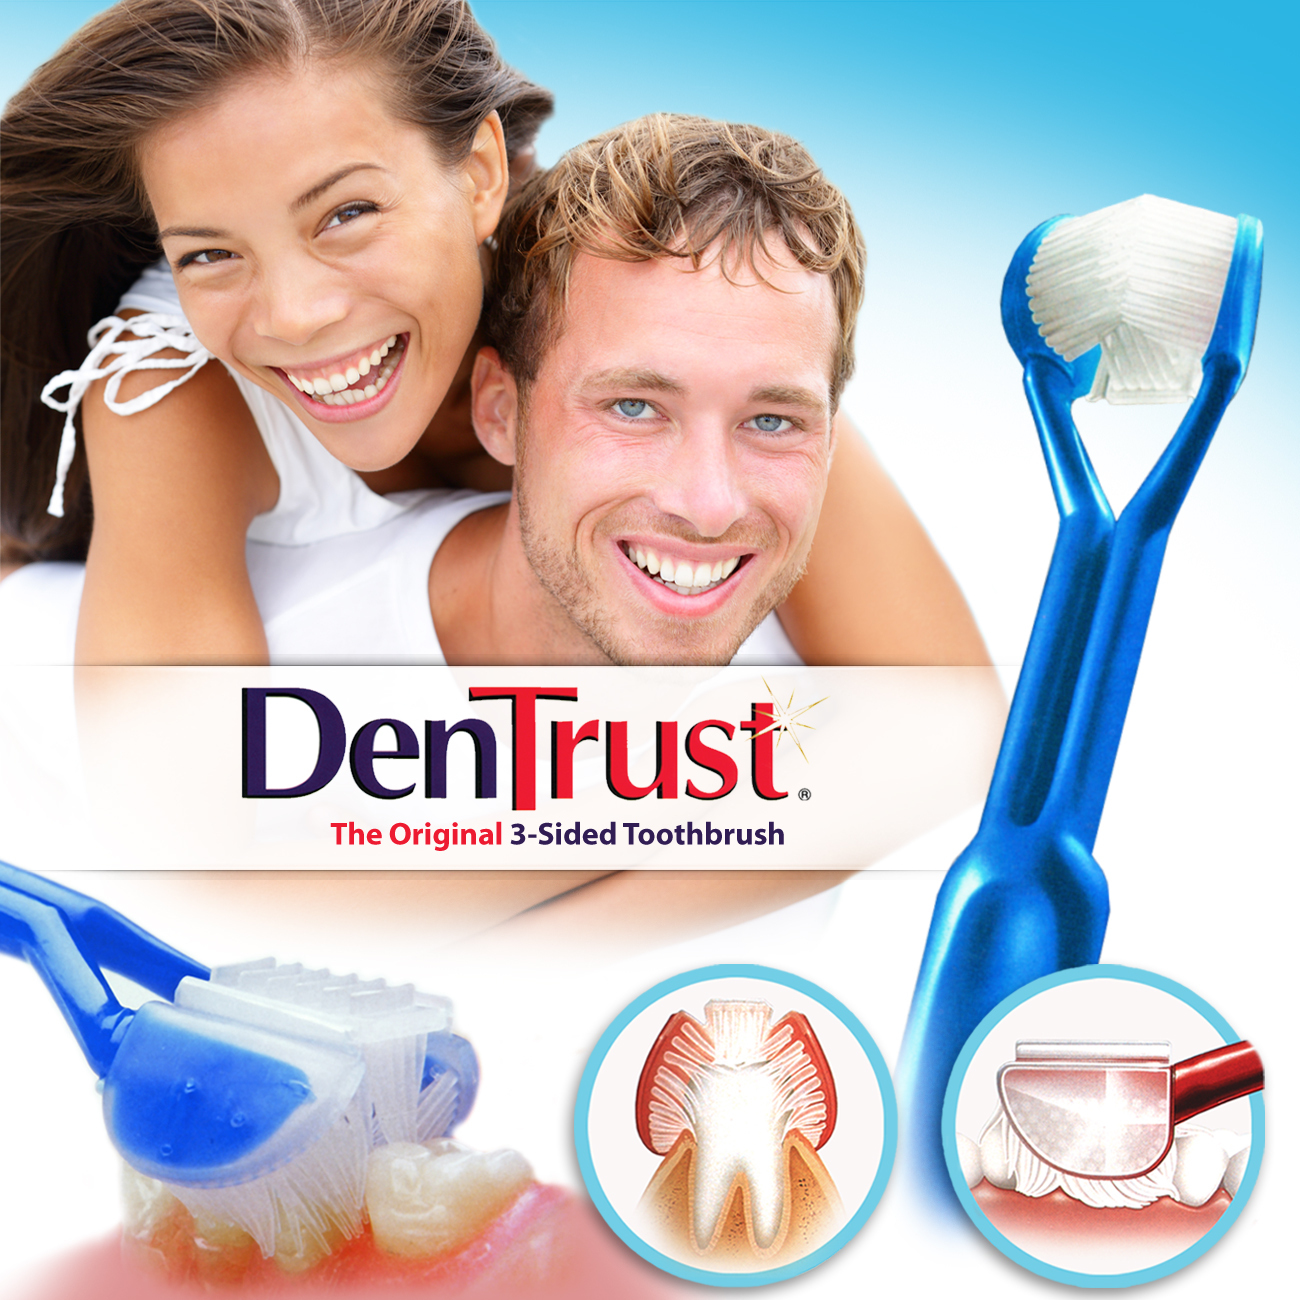 DenTrust 3-Sided Toothbrush :: Soft :: Wrap-Around Design for Complete Cleaning :: Fast, Easy & More Effective :: Clinically Proven DTS0001-EW